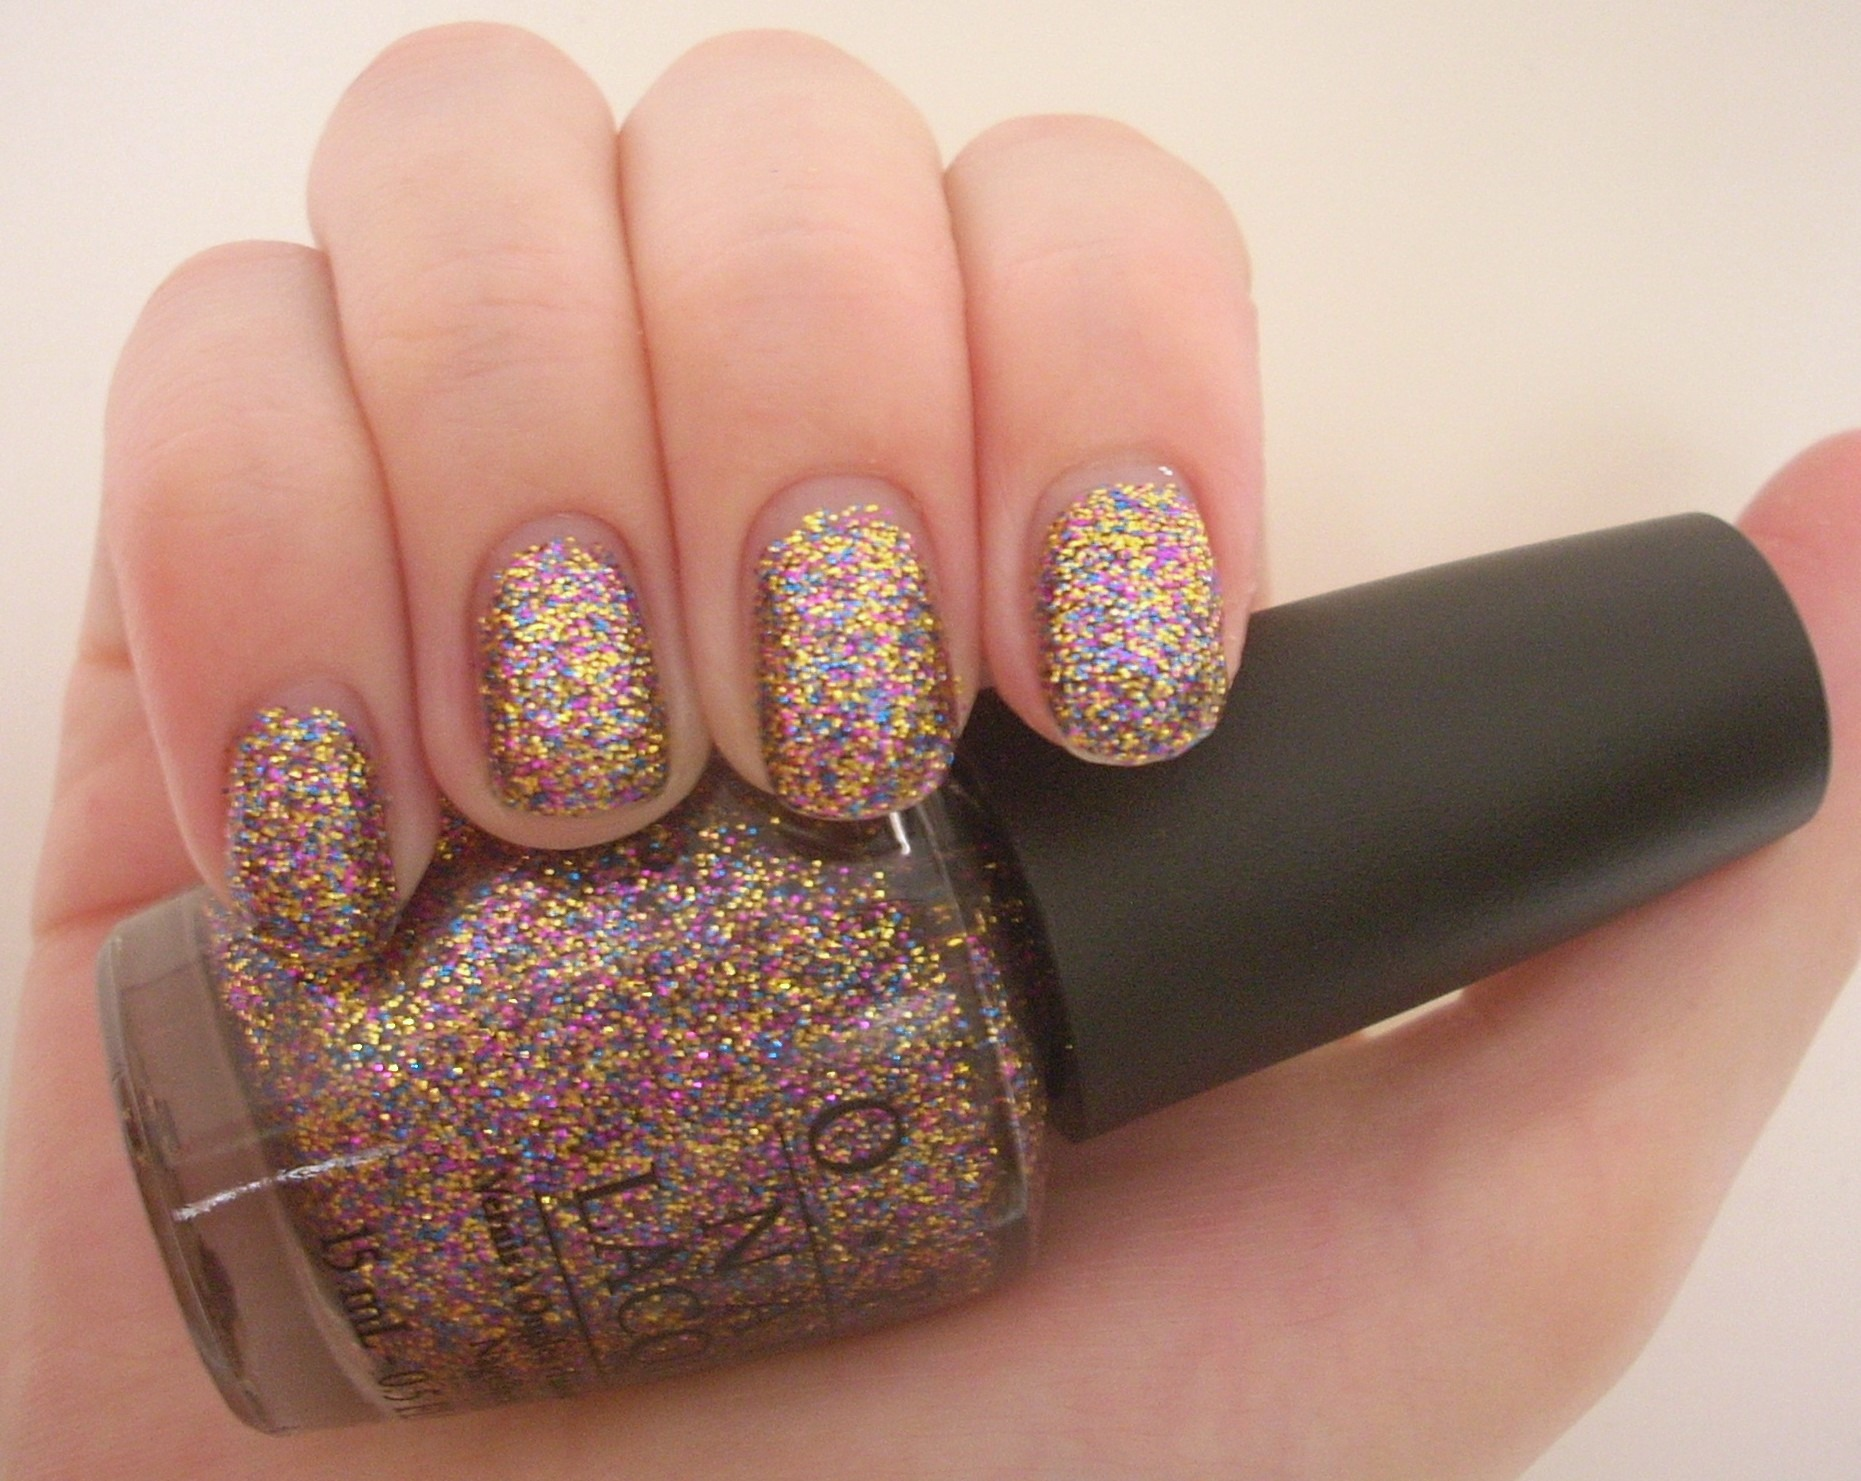 OPI Sparkle-licious nail polish review | Through The ...